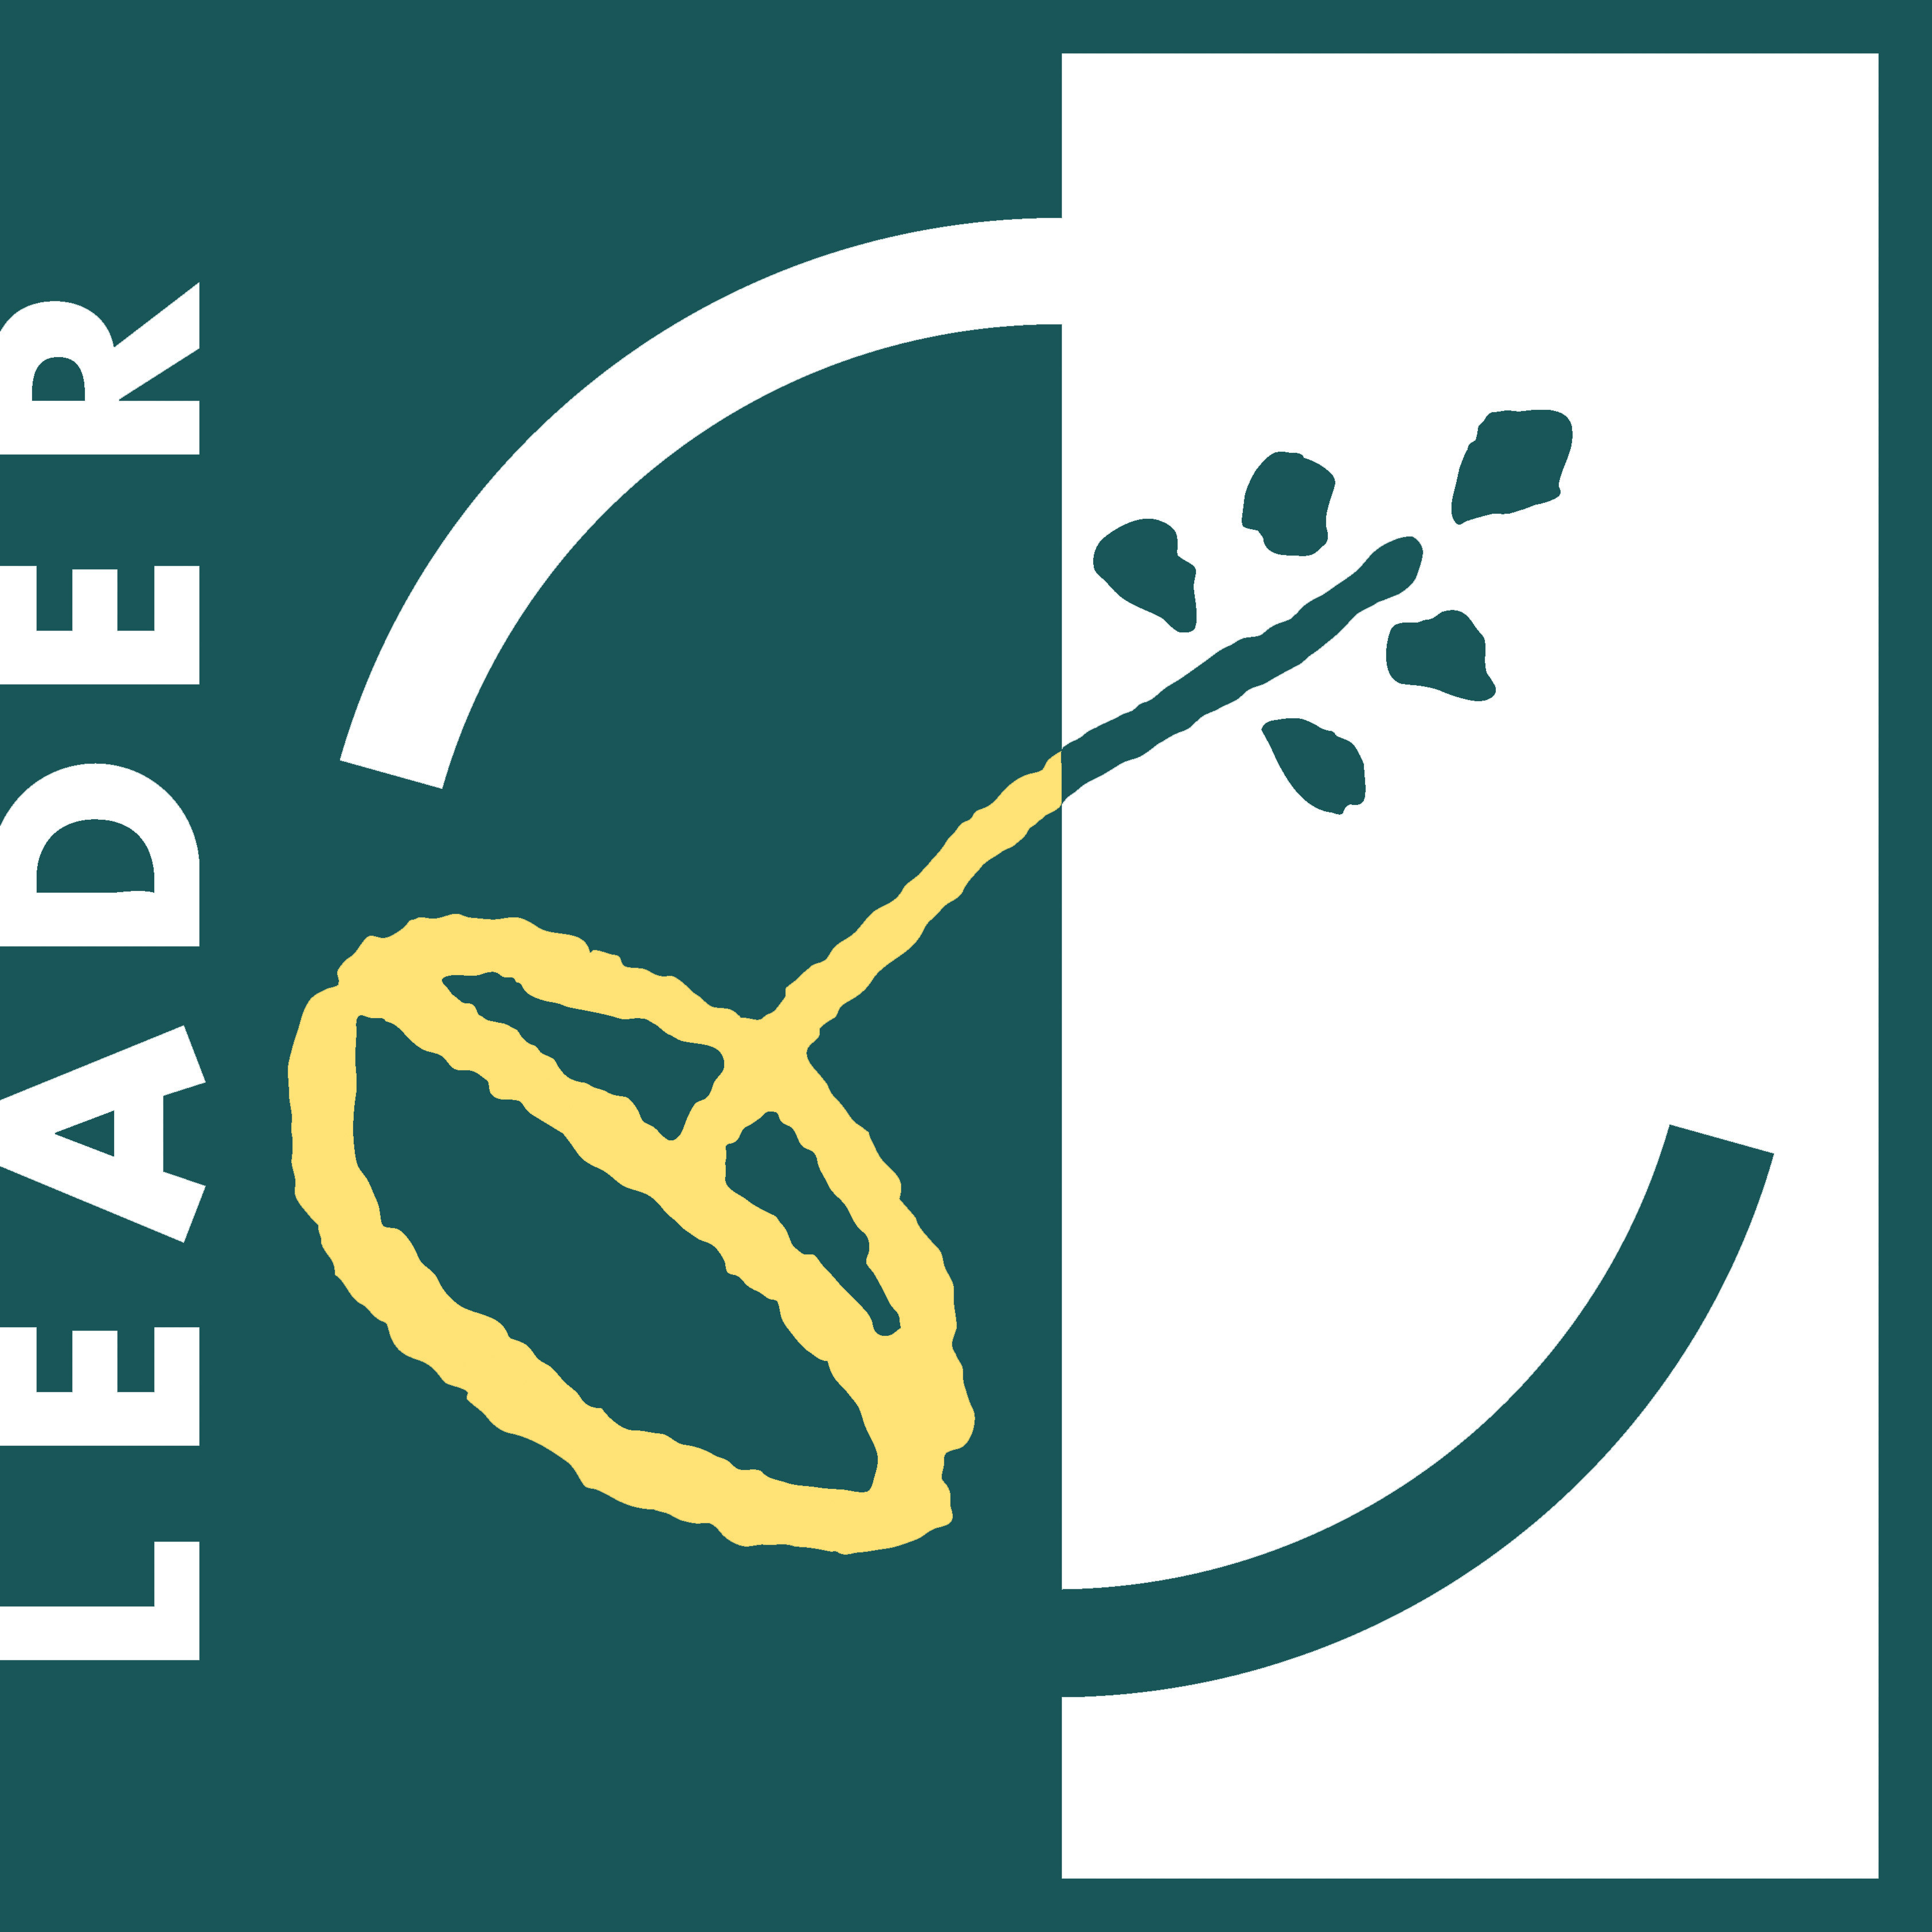 Leaderin logo